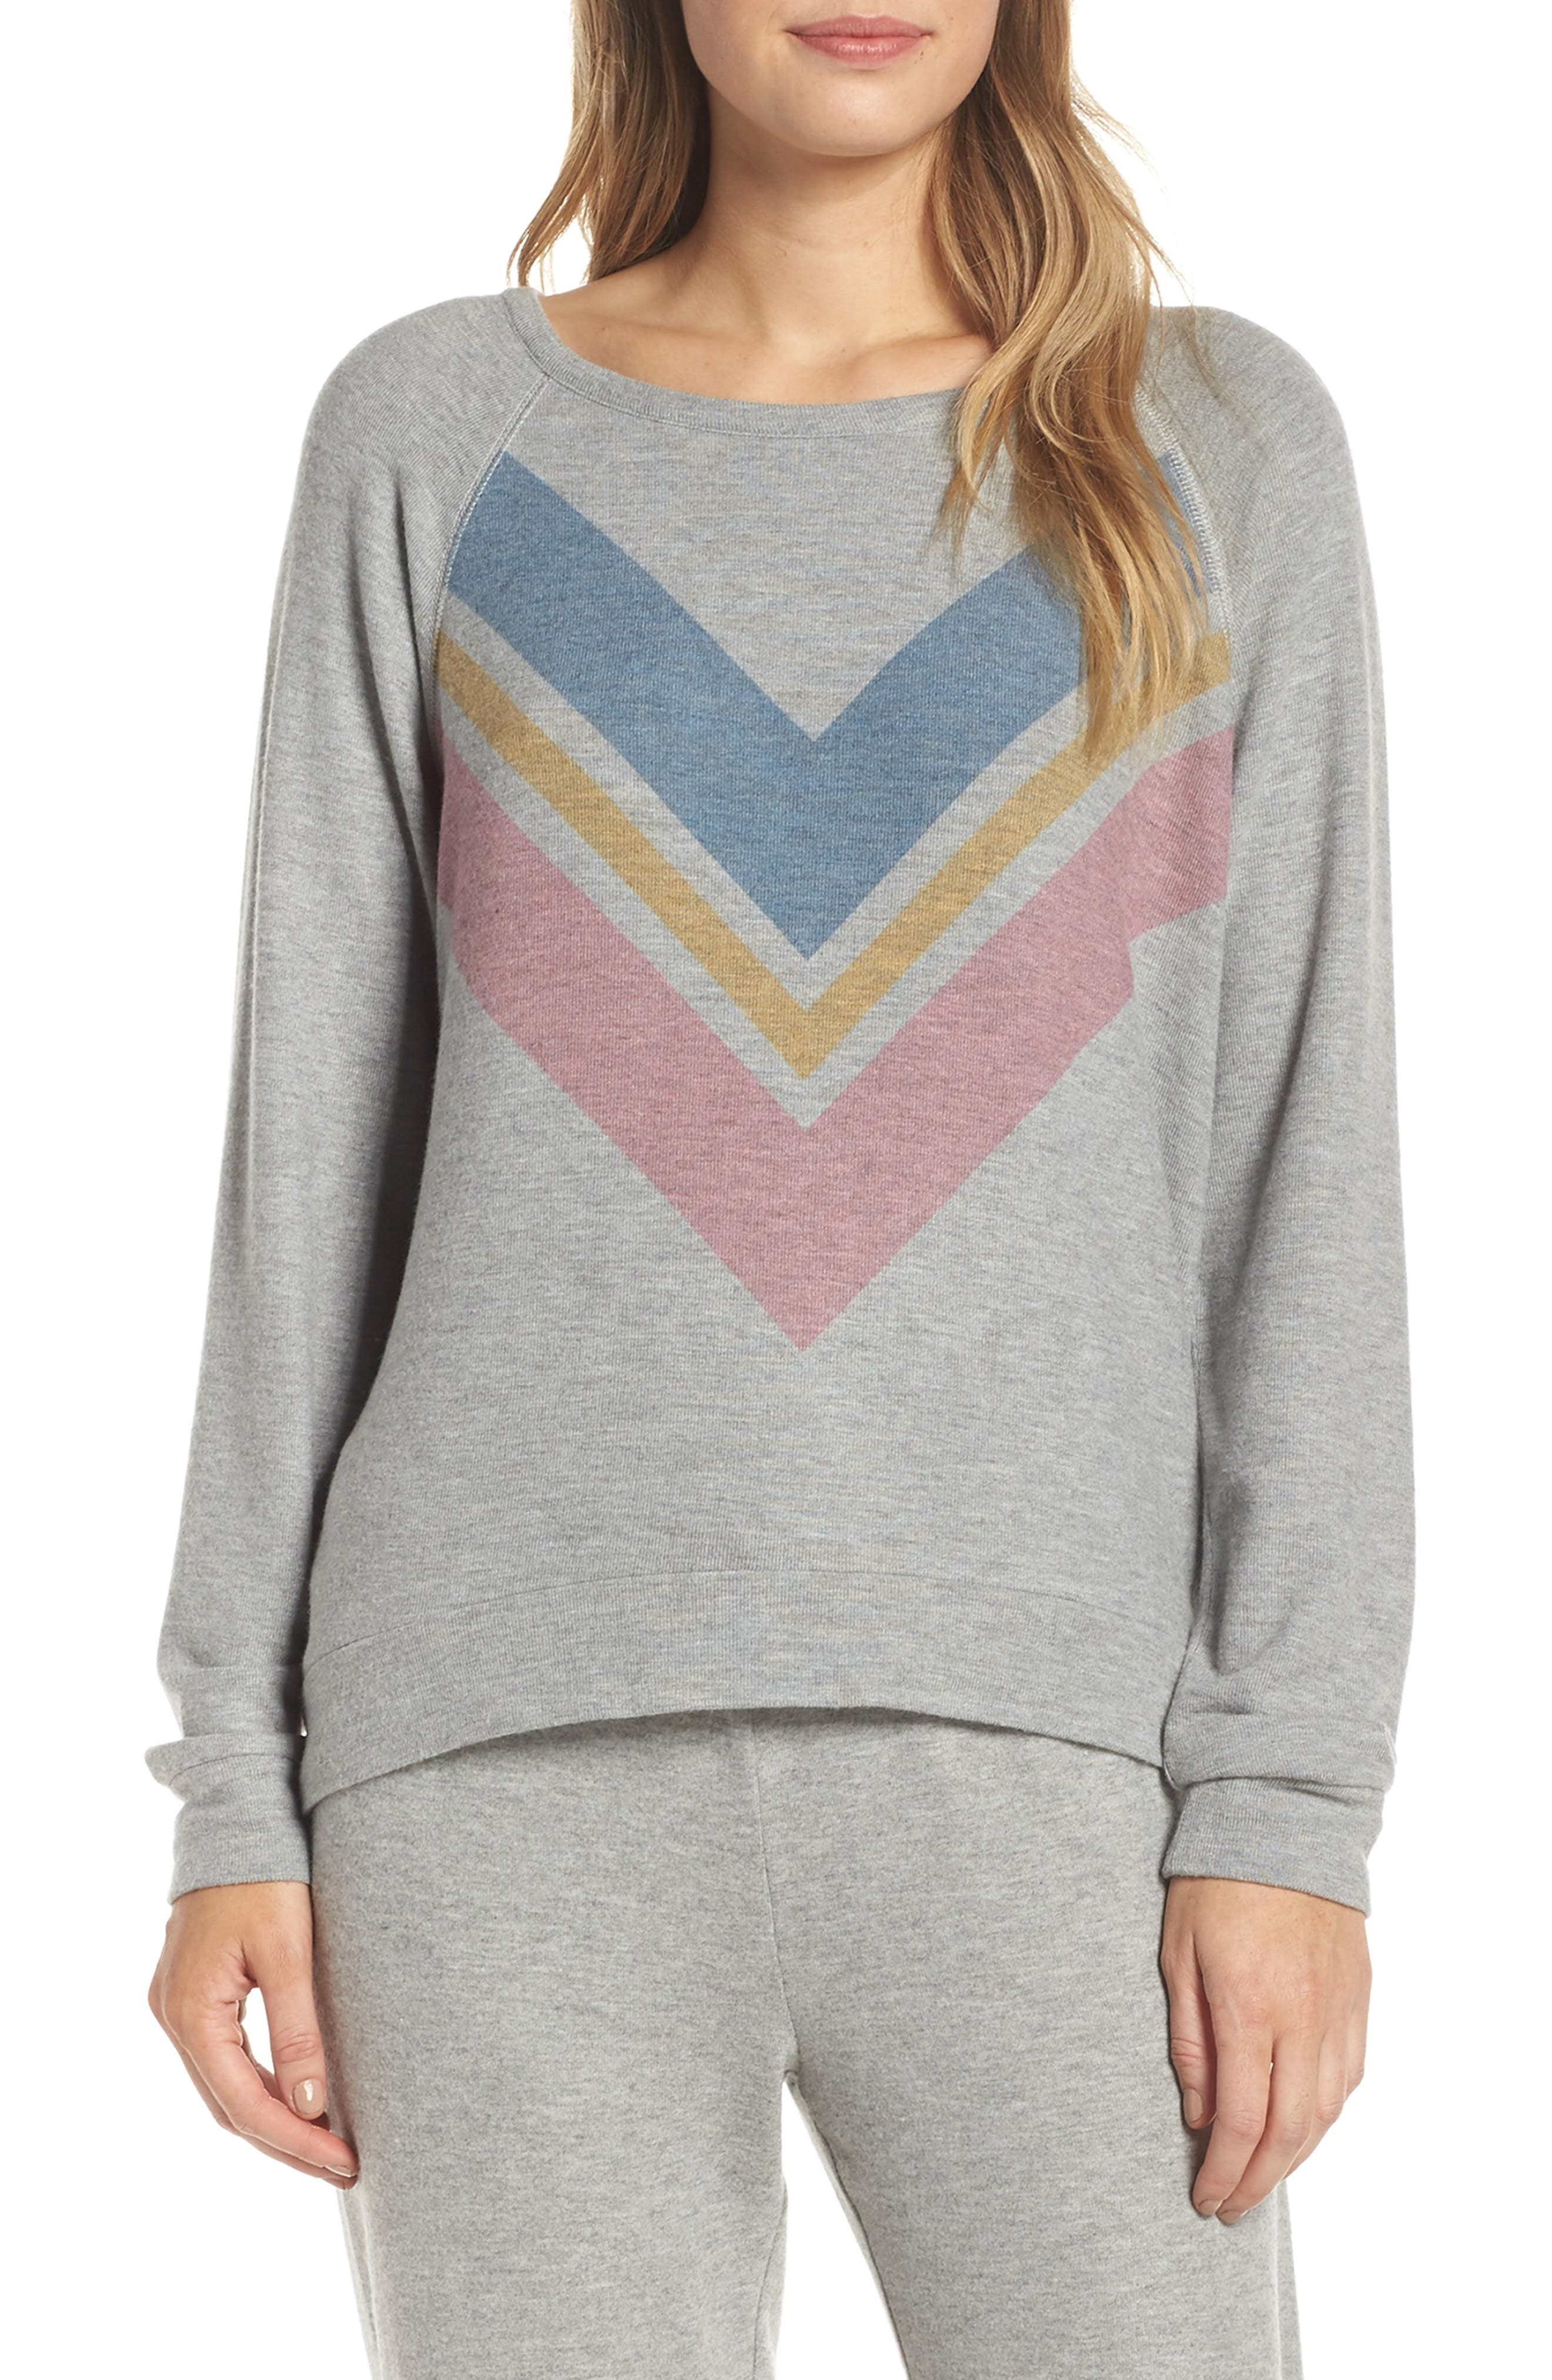 Pj Salvage Lounge Essentials Chevron Pullover, Grey